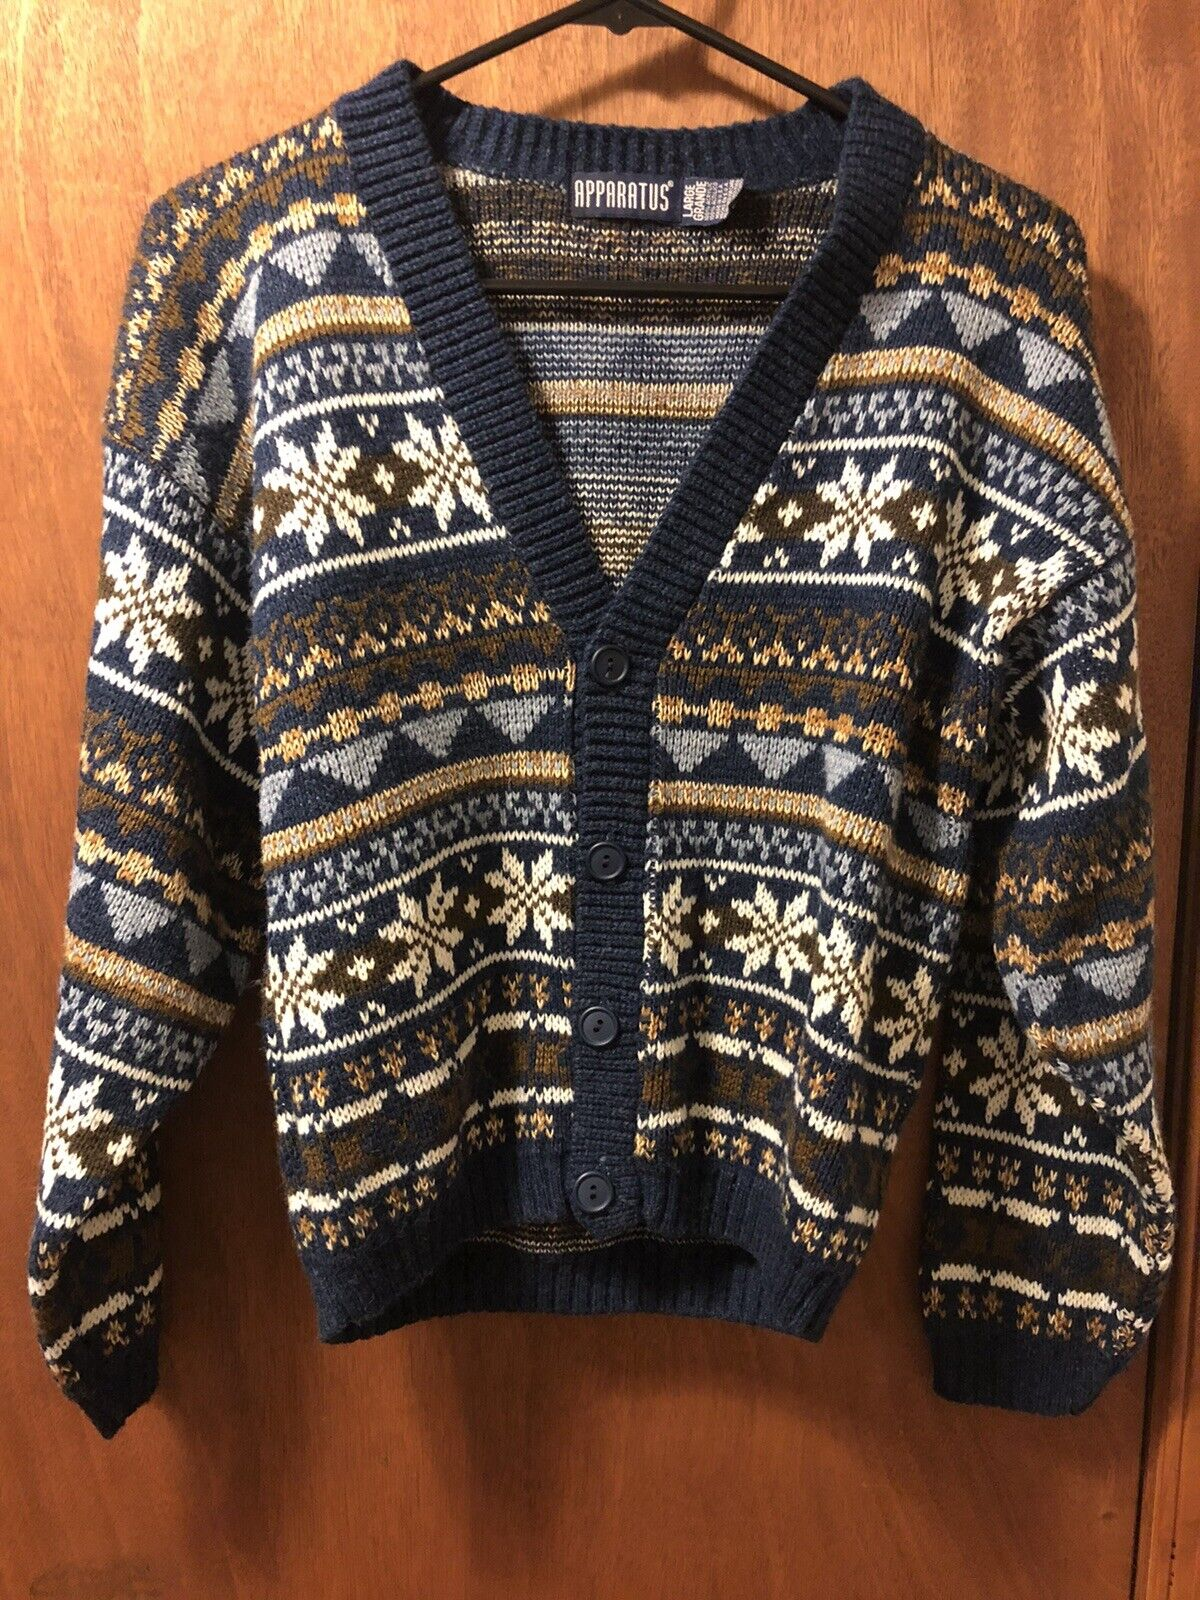 Vintage Geometric Leather Cut and Sew Striped Mens Knit Sweater